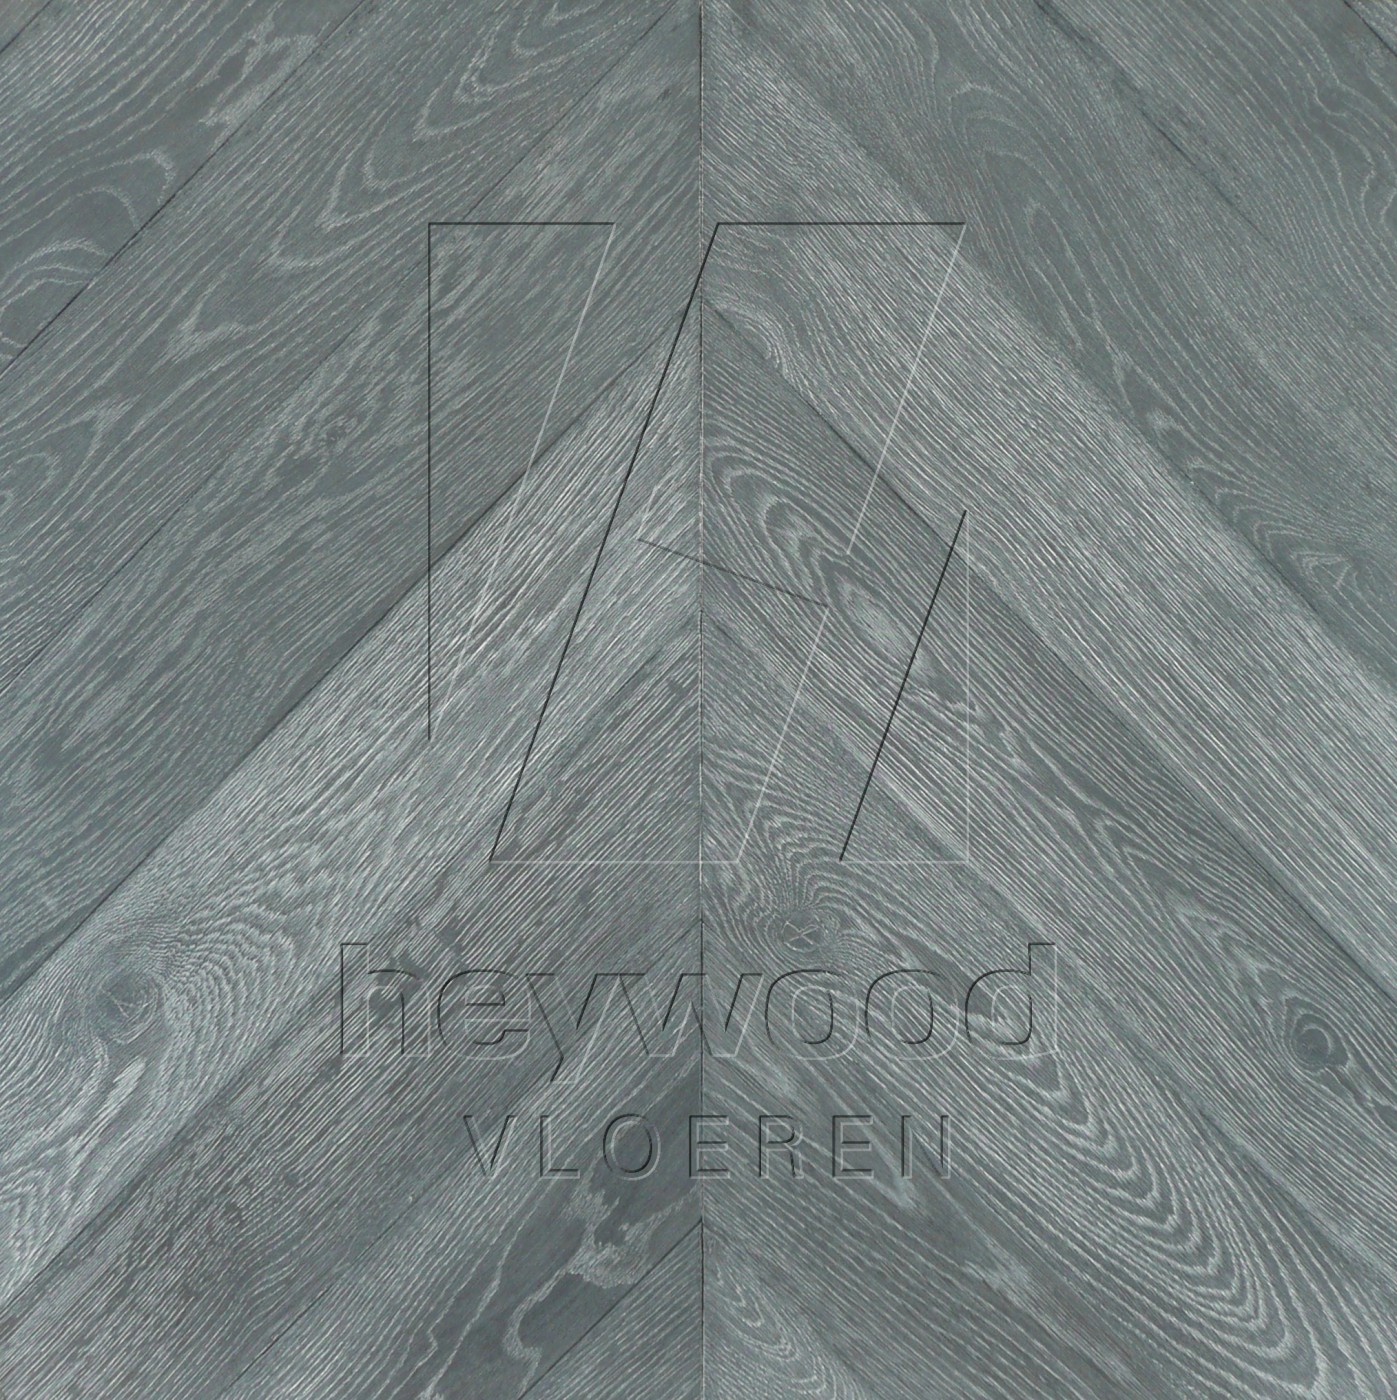 'Salamanca coloured' Chevron 45°, Bespoke Character in Chevron of Pattern & Panel Floors